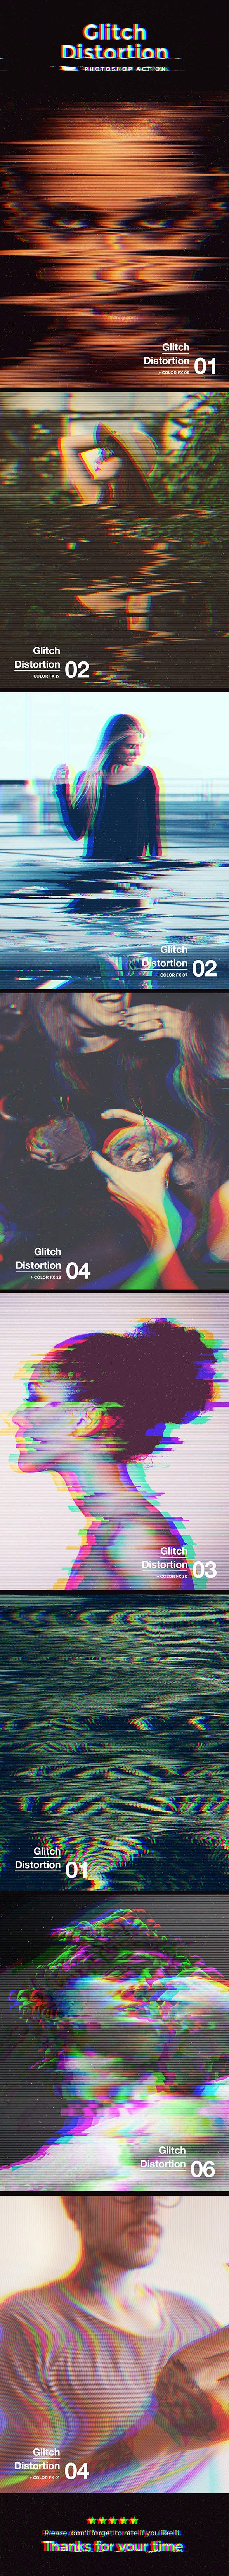 Glitch Distortion Photoshop Action - Photo Effects Actions